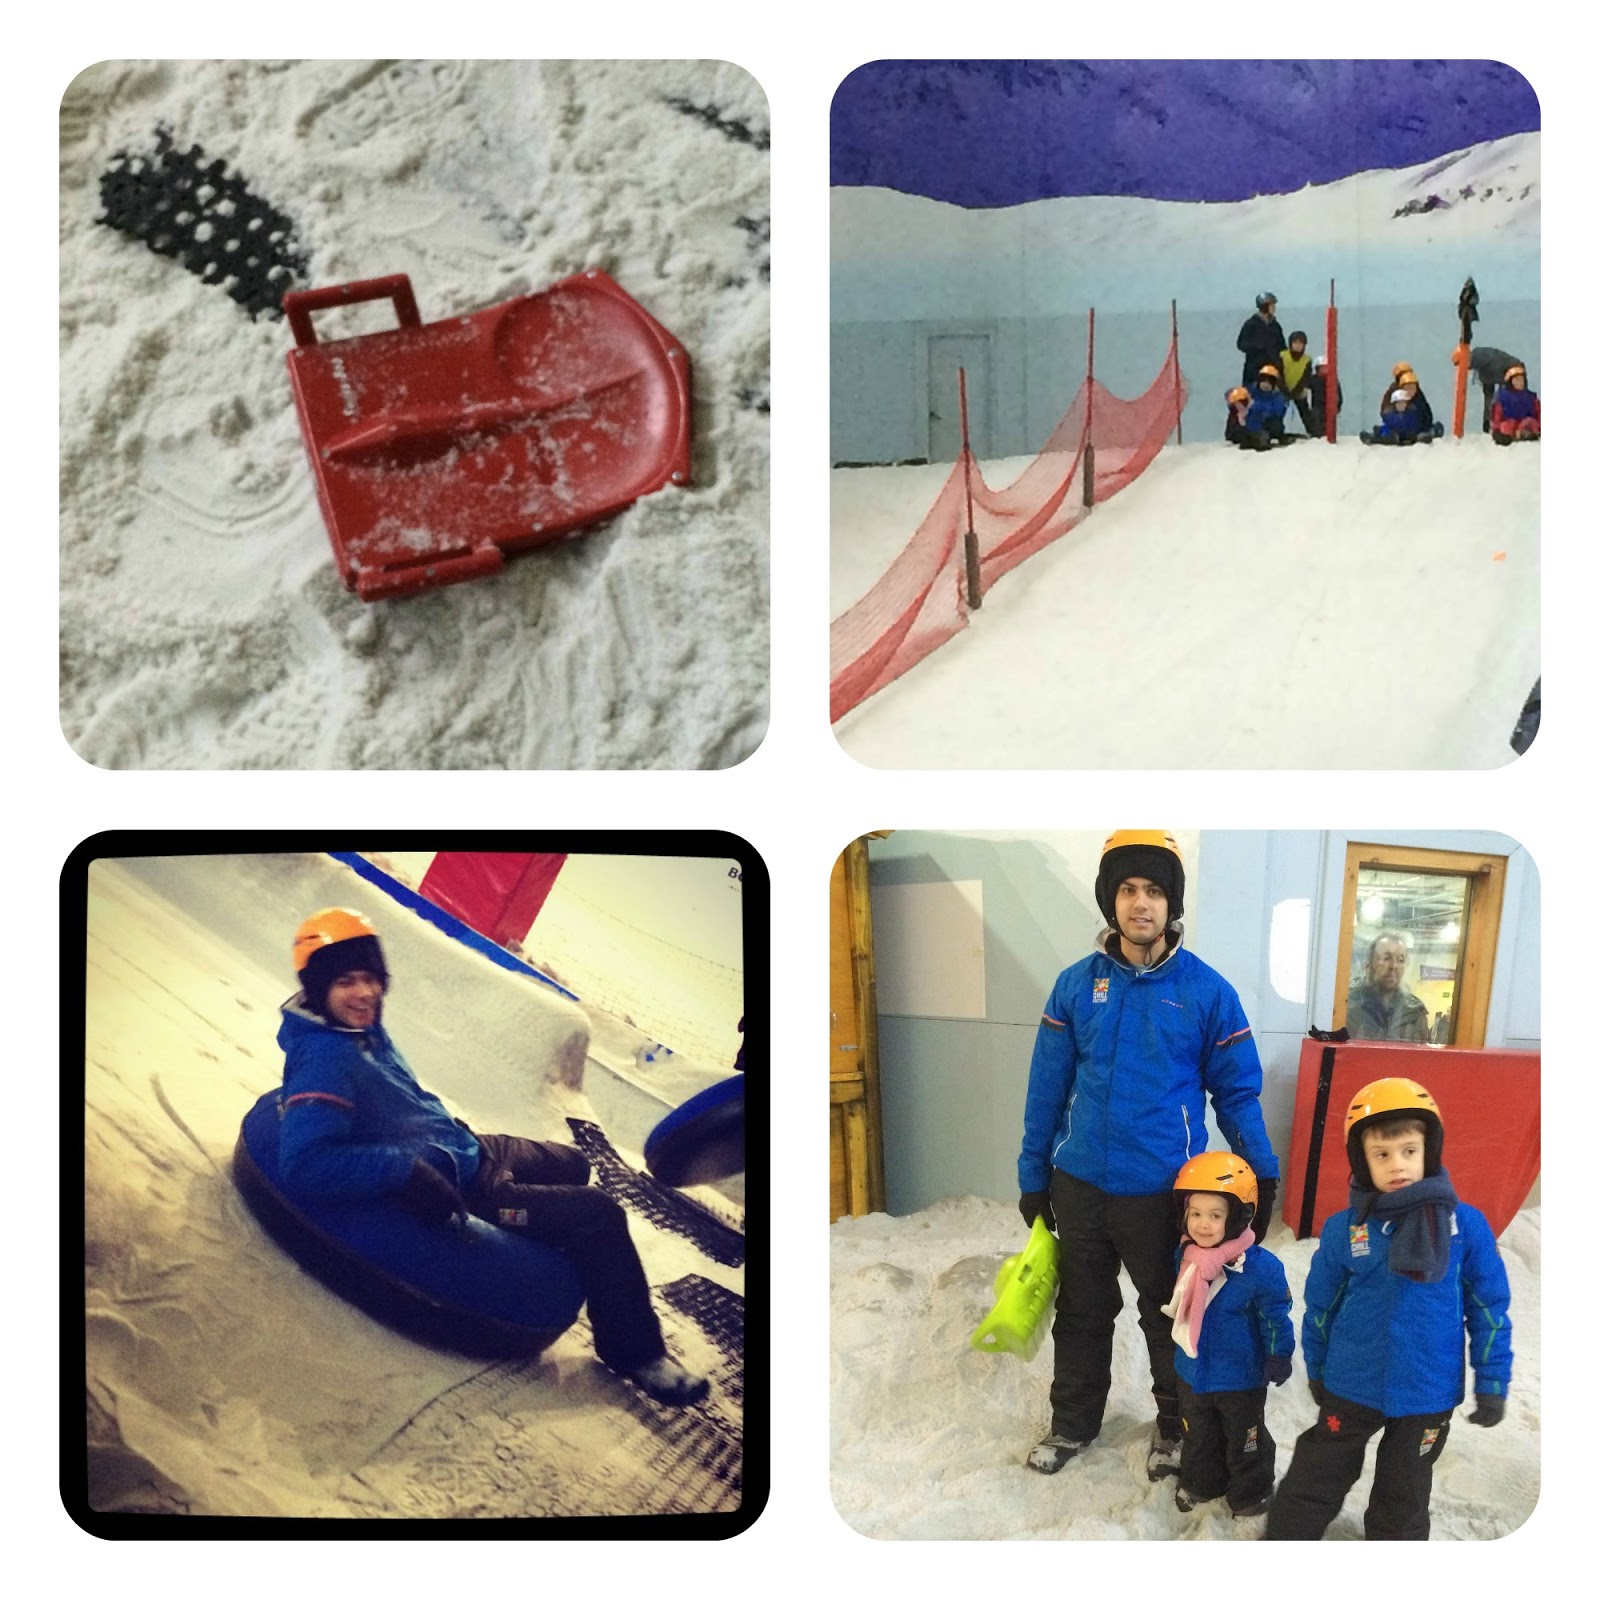 Snow Park Chill Factore Manchester